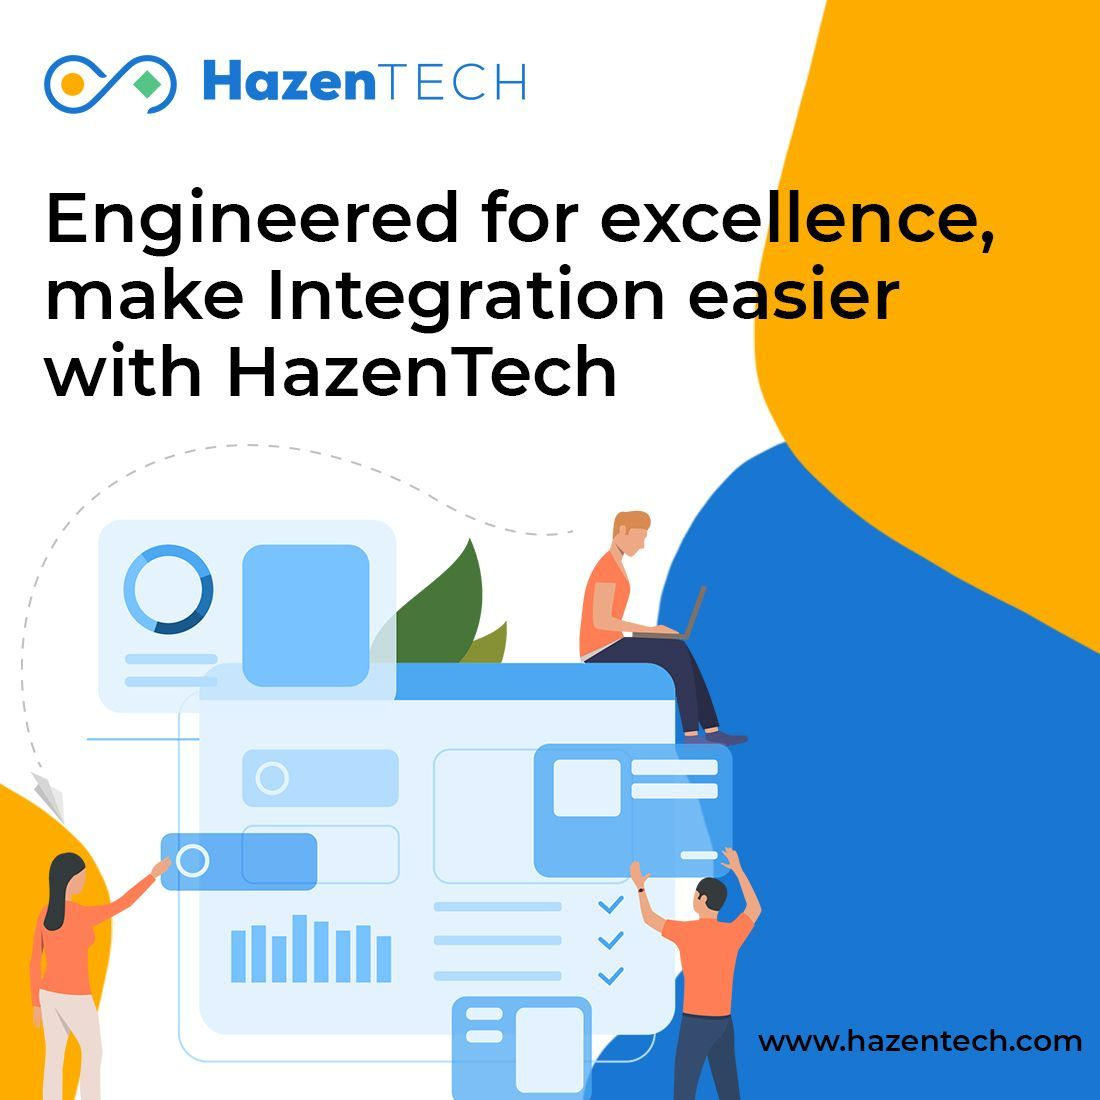 Hazentech Integration Solutions And Services Can Help You Improve Your Operations Anywhere Enterprise Application Integration Enterprise Application Integrity